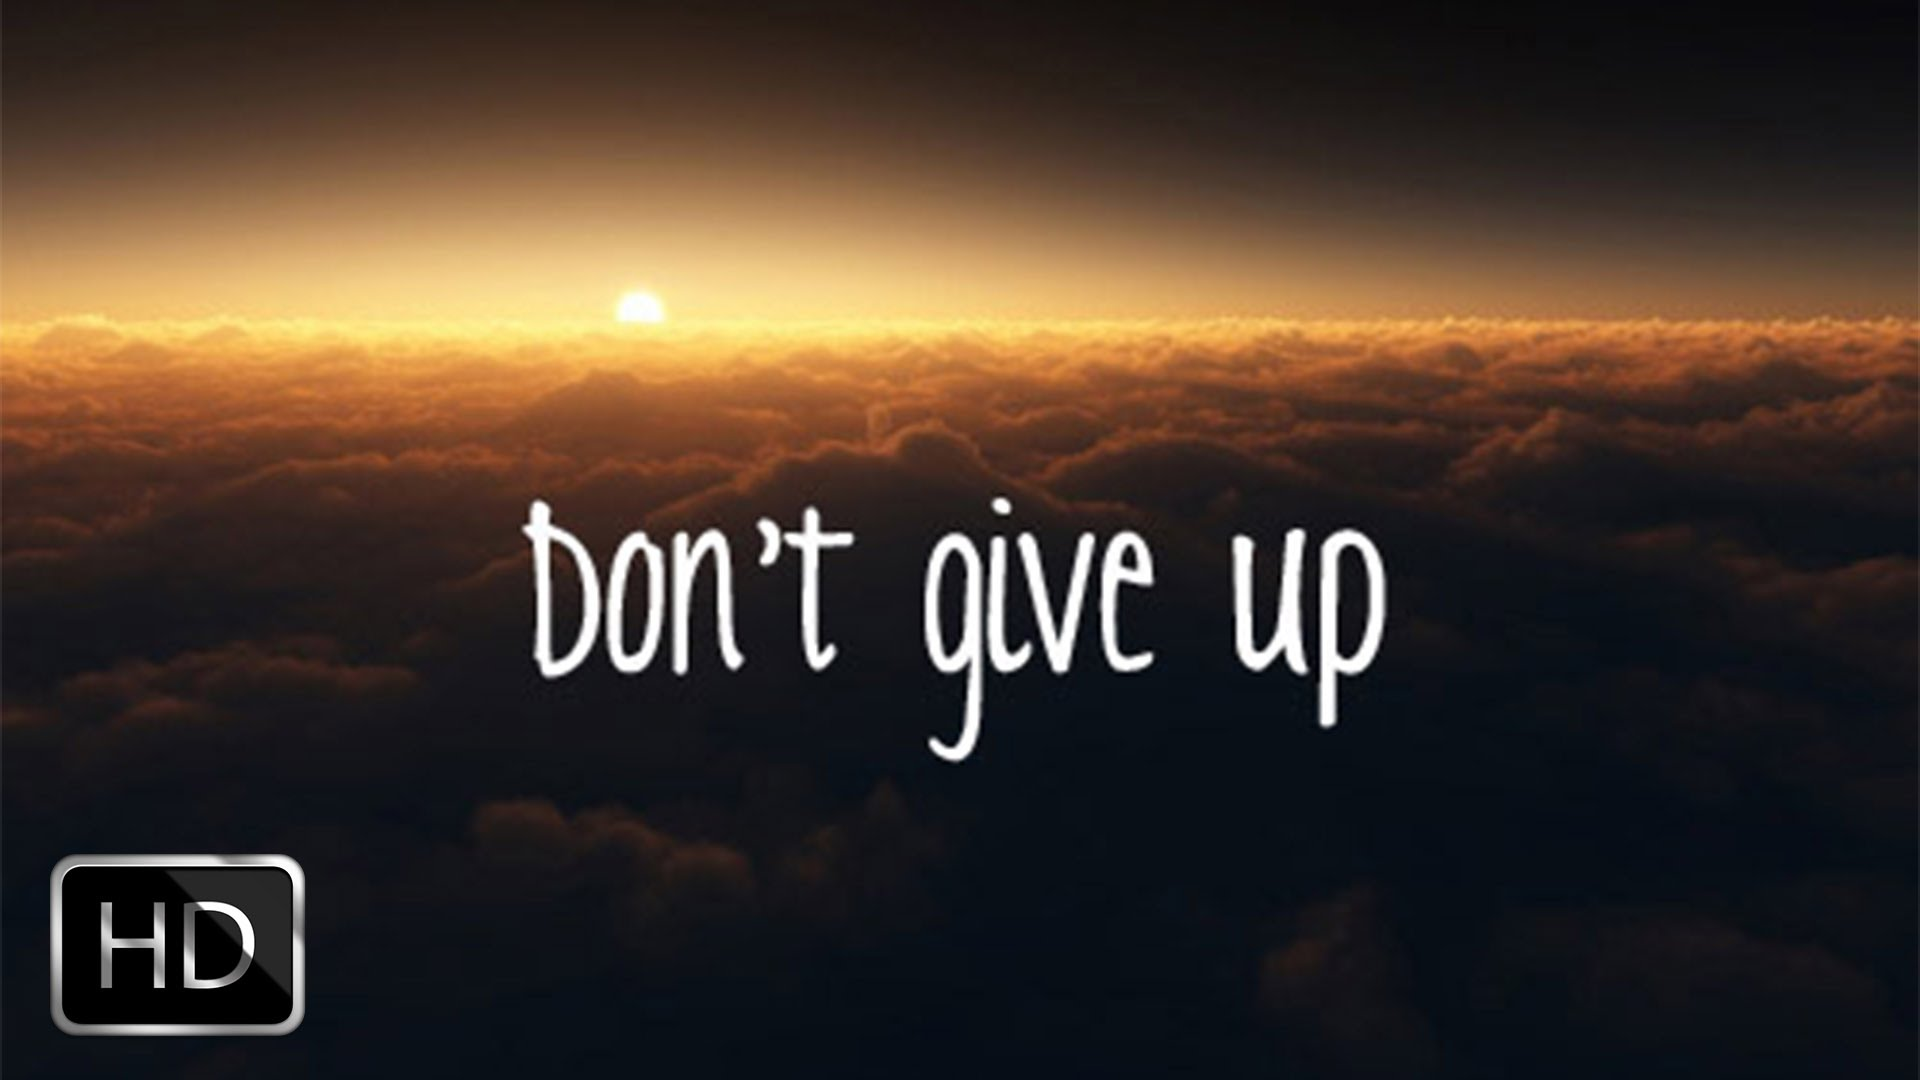 The Best Motivation Video 2015 - DON'T GIVE UP